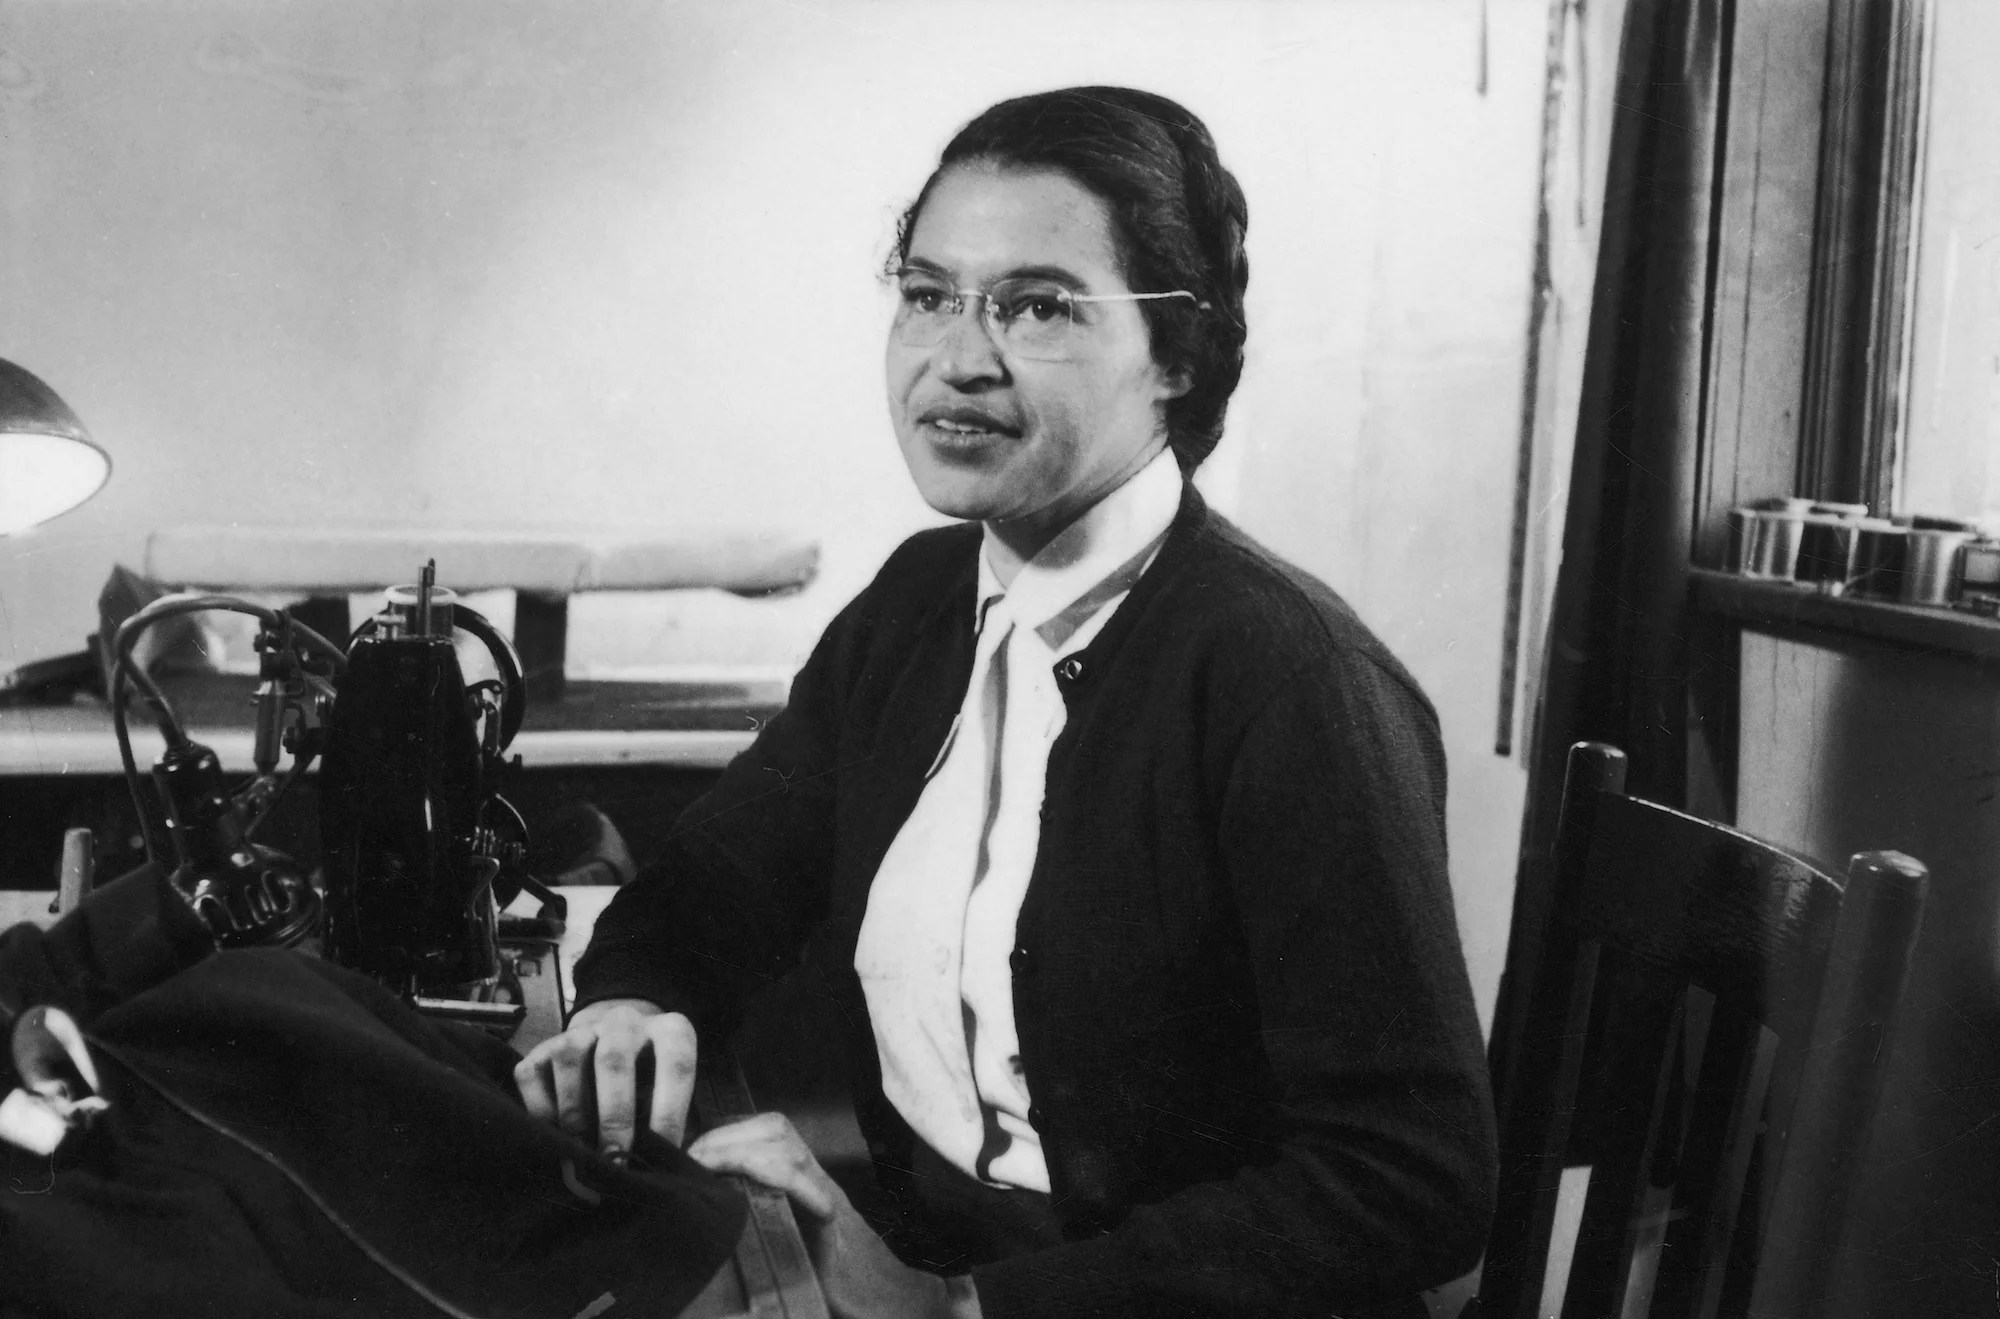 Rosa Parks Refused To Give Up Her Seat On A Segregated Bus